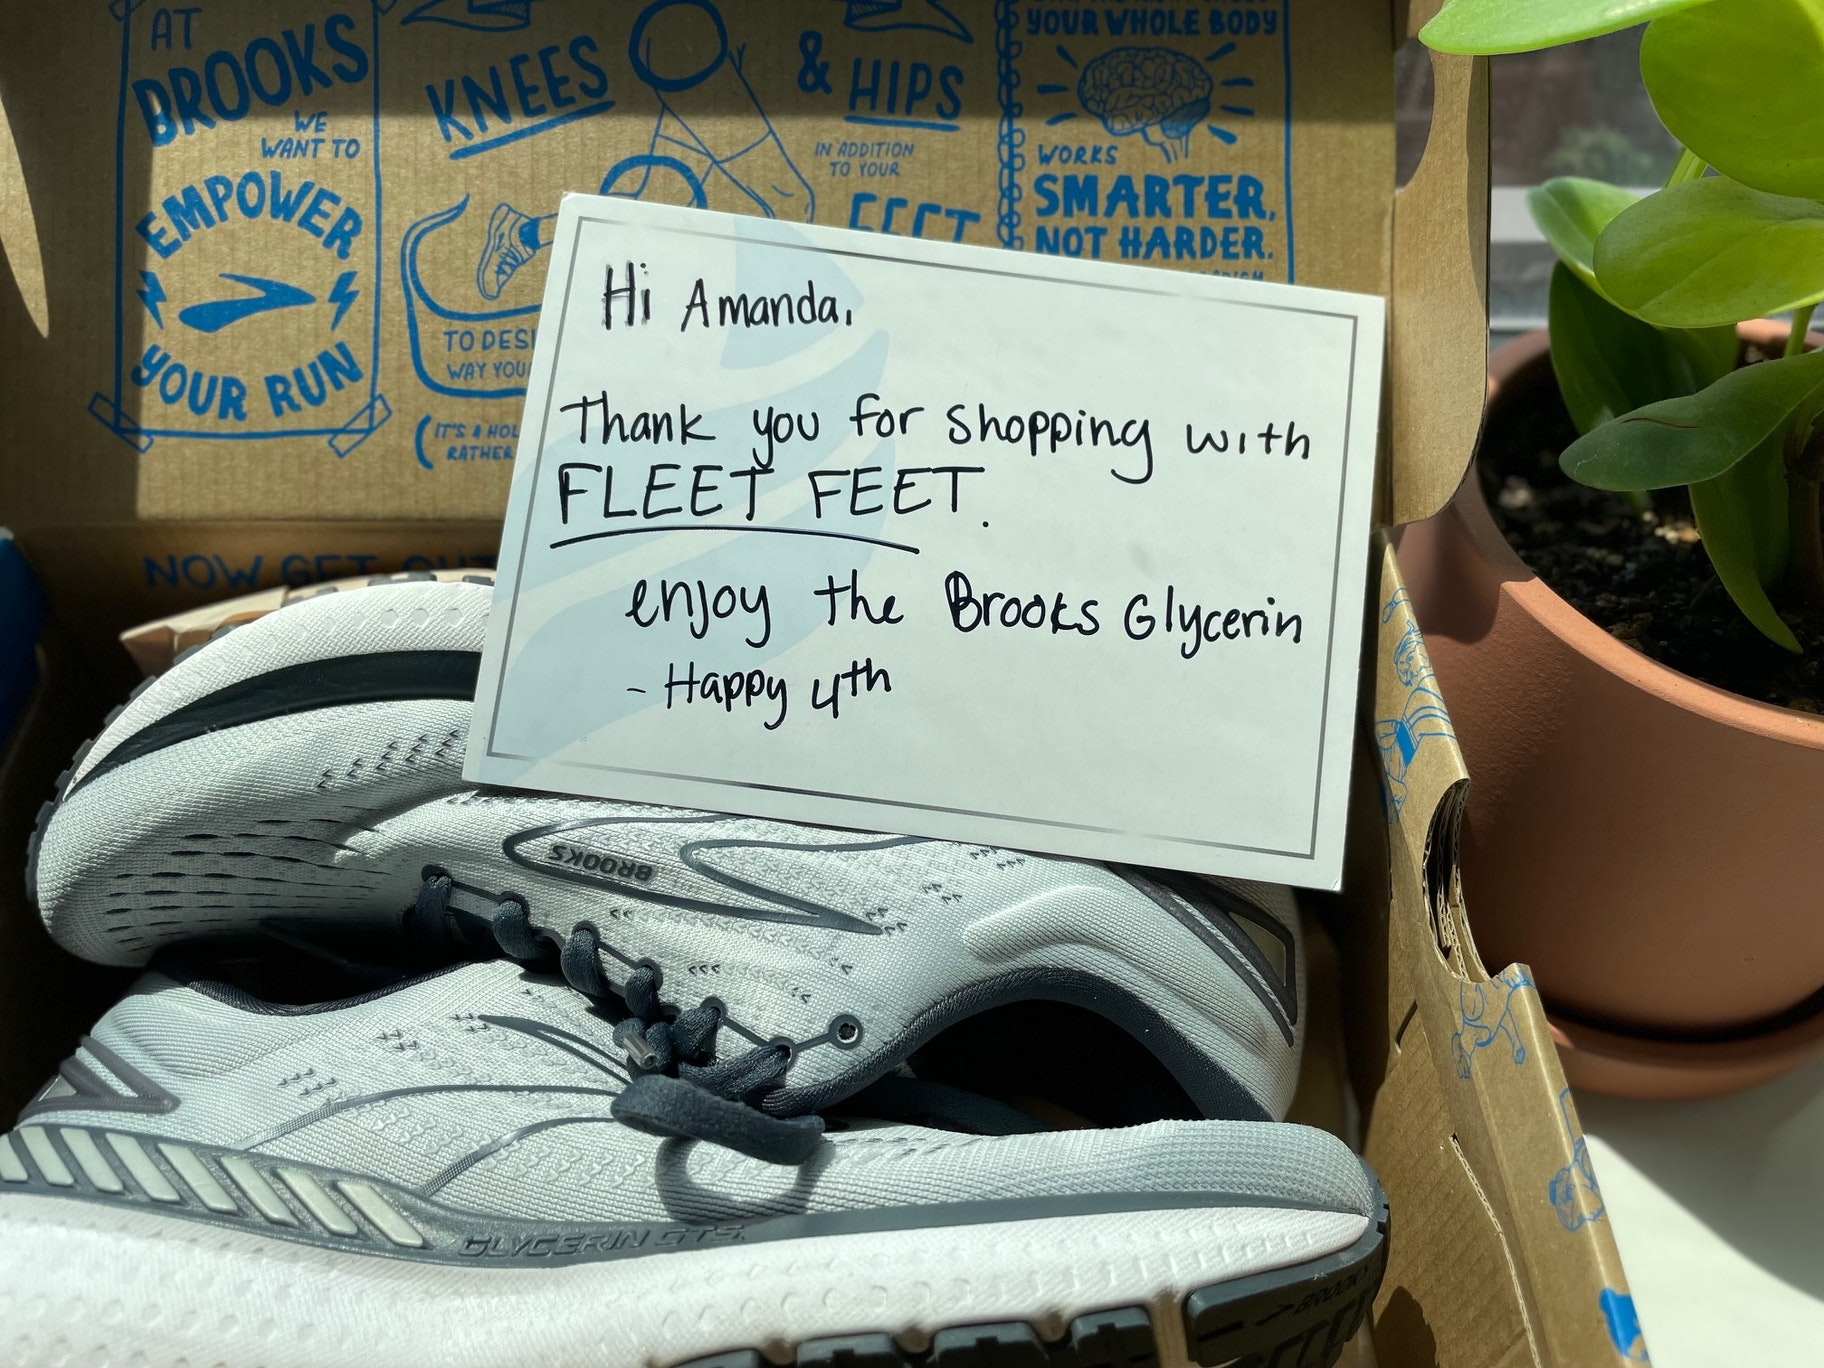 Fleet Fleet thank you for your purchase